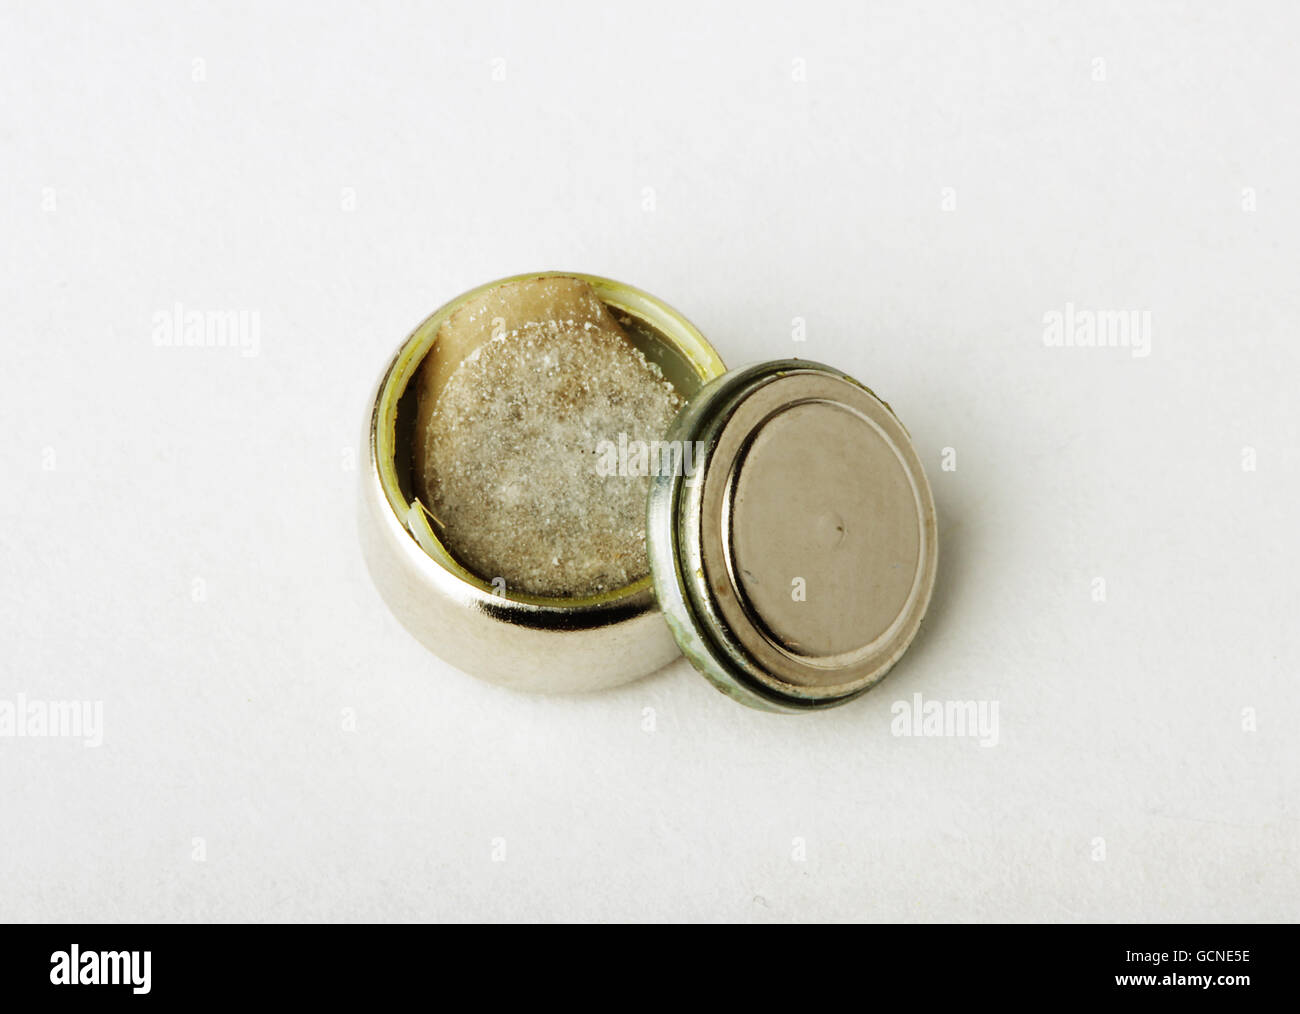 exploded manganese battery alkaline metal the inner contents of the  components - Stock Image